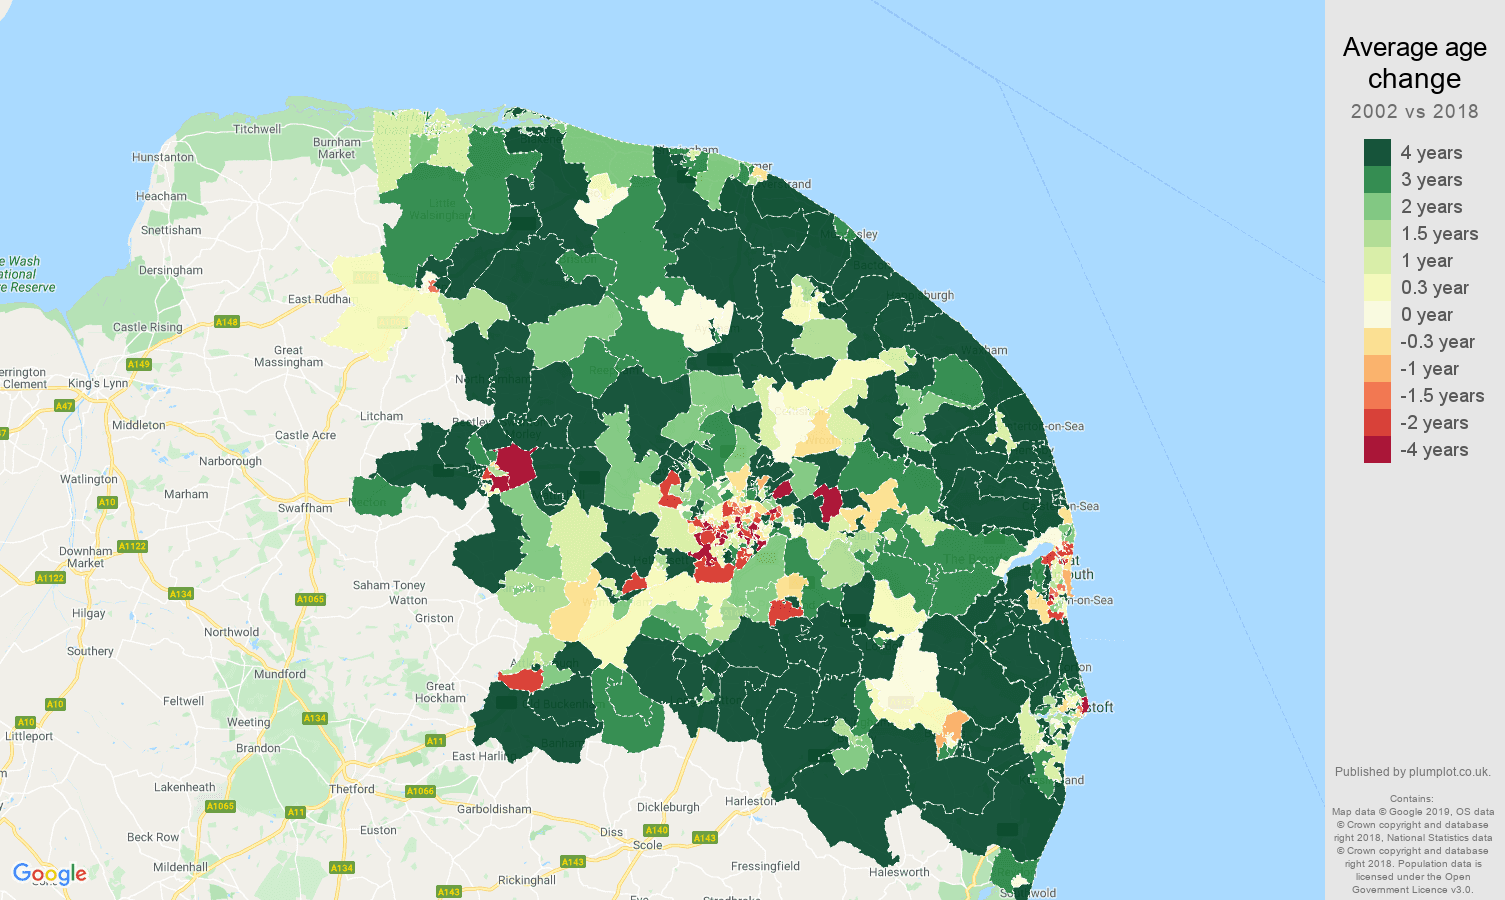 Norwich average age change map